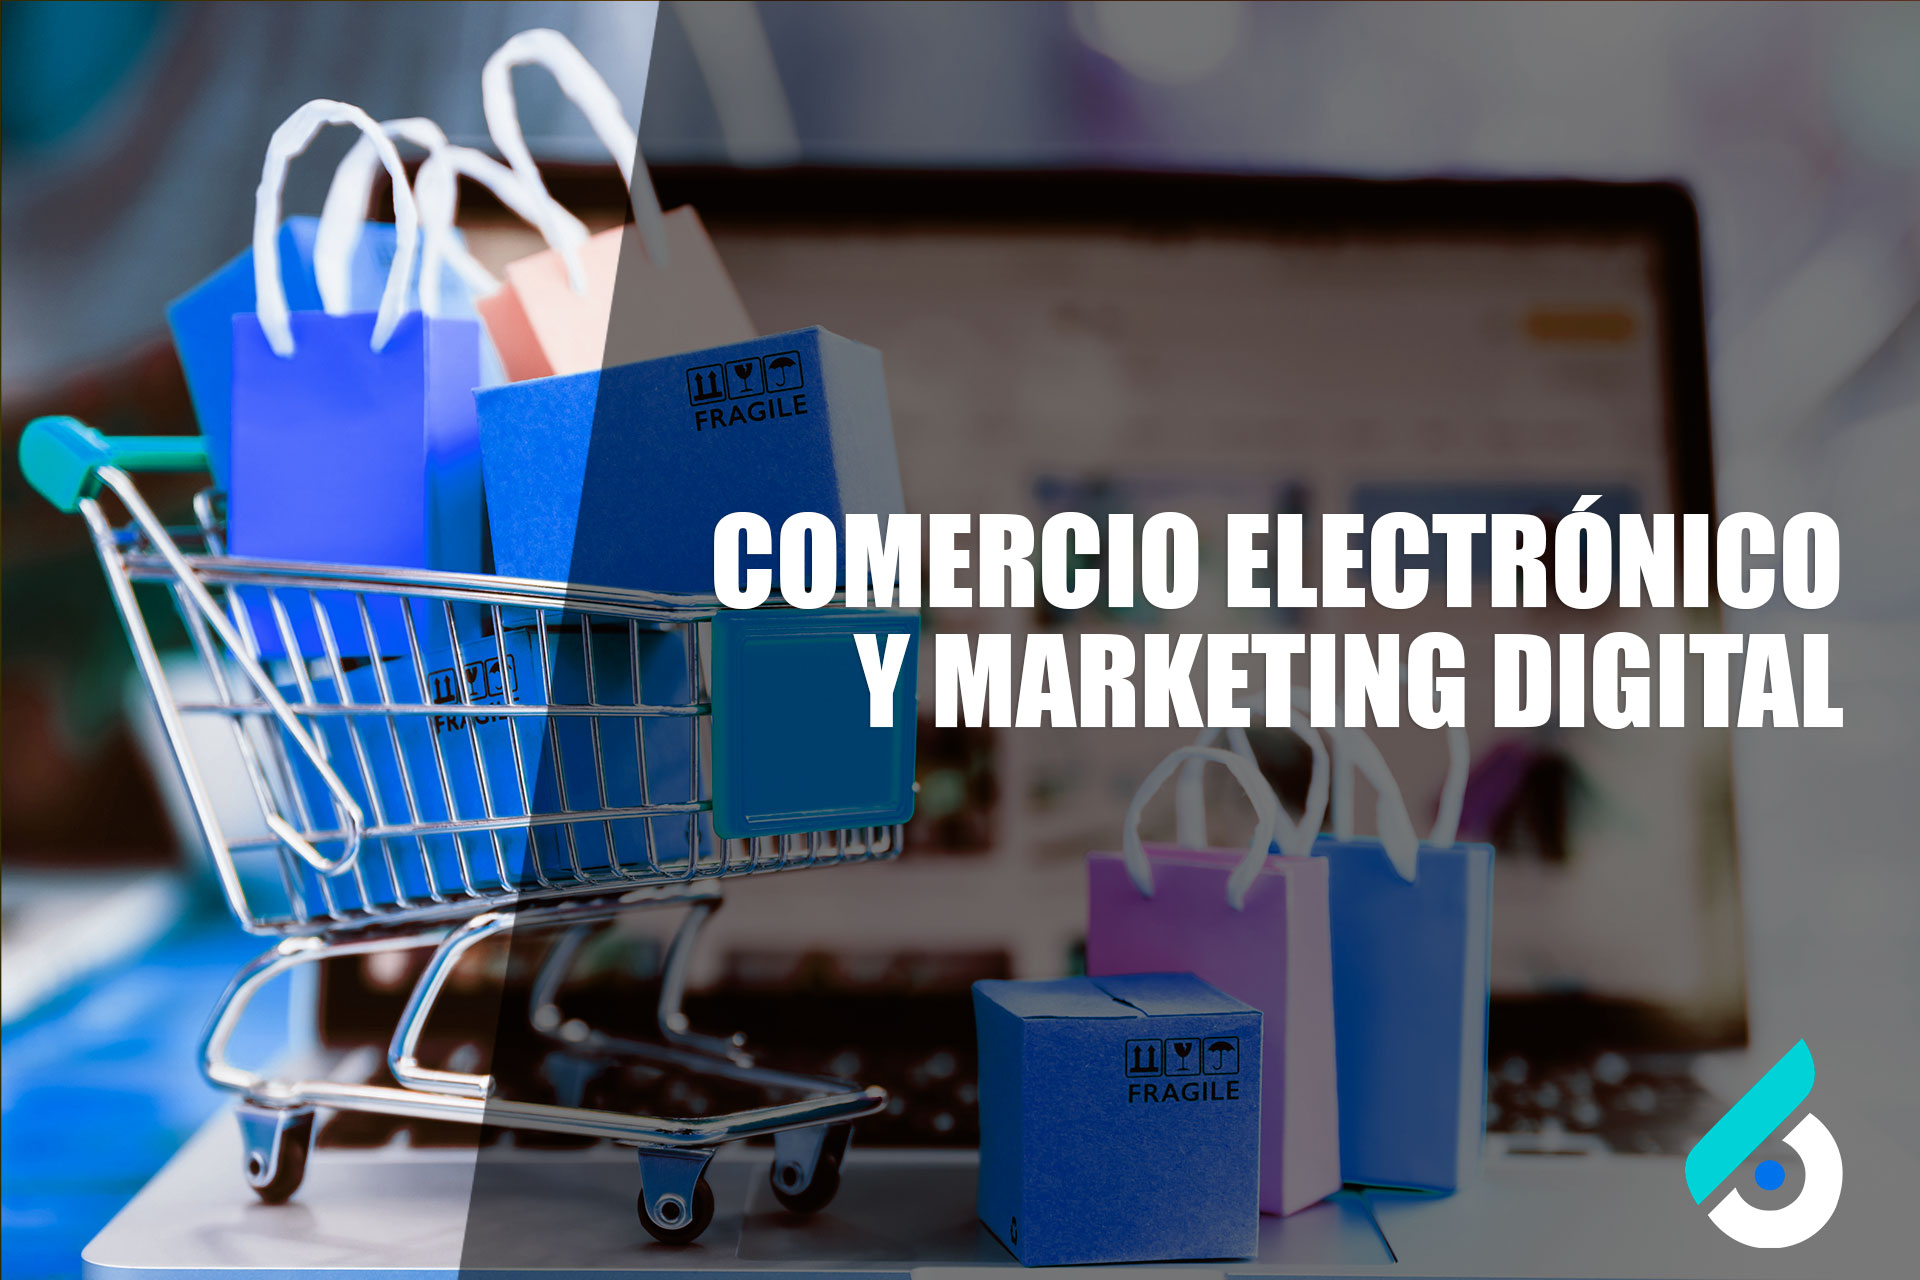 DMIPE-20-01-13-0422-1 | Comercio Electrónico y Marketing Digital